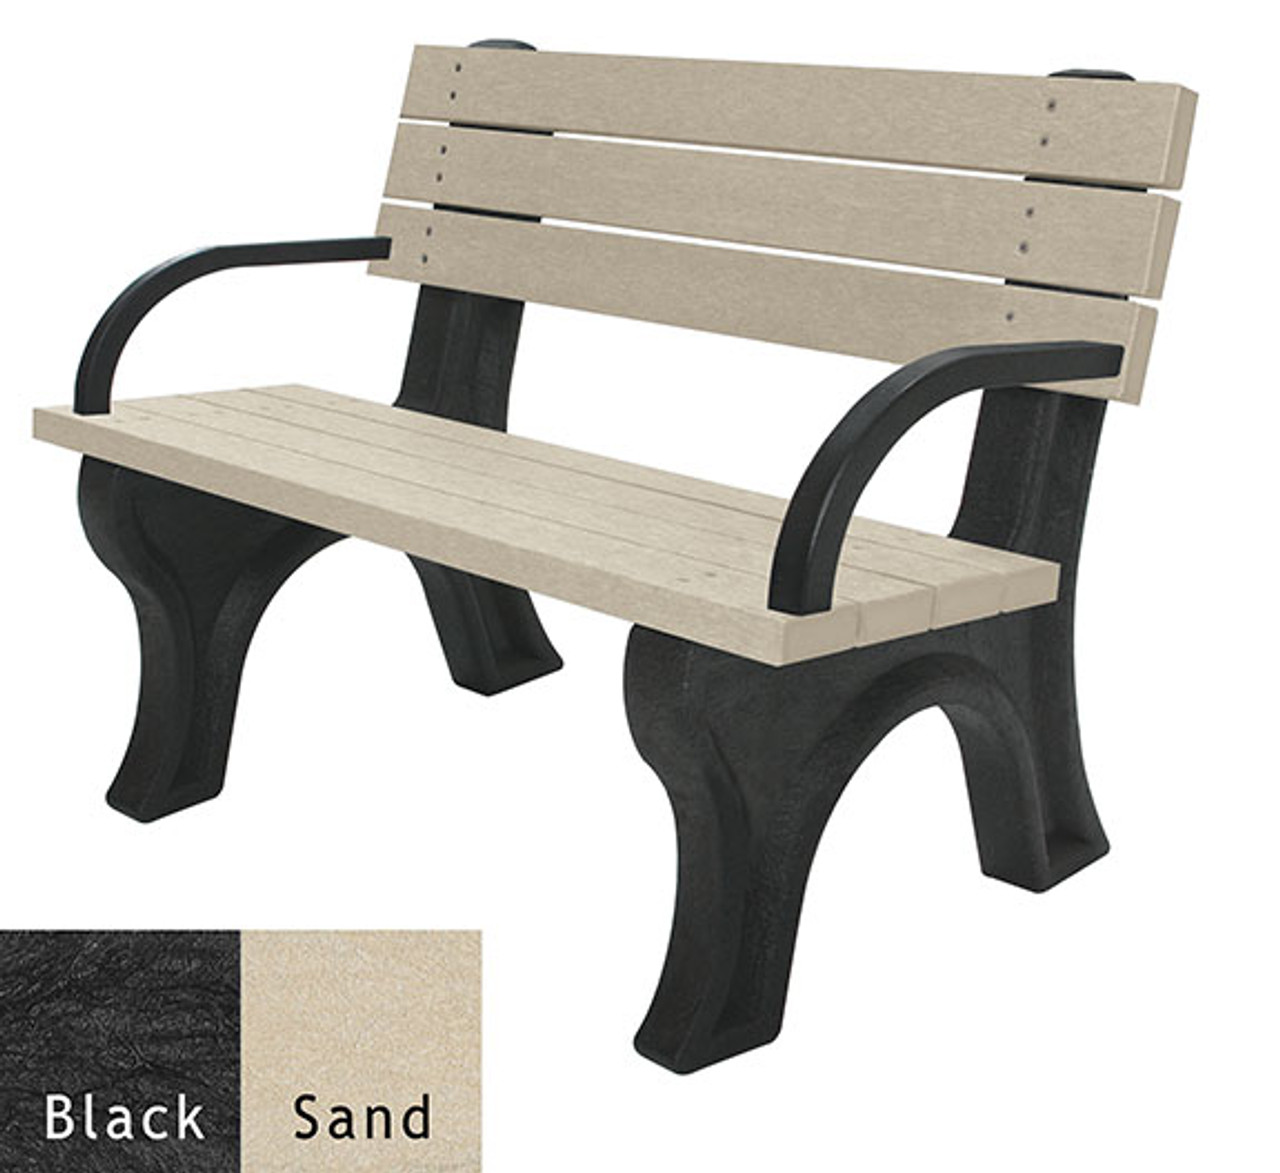 Black and Sand